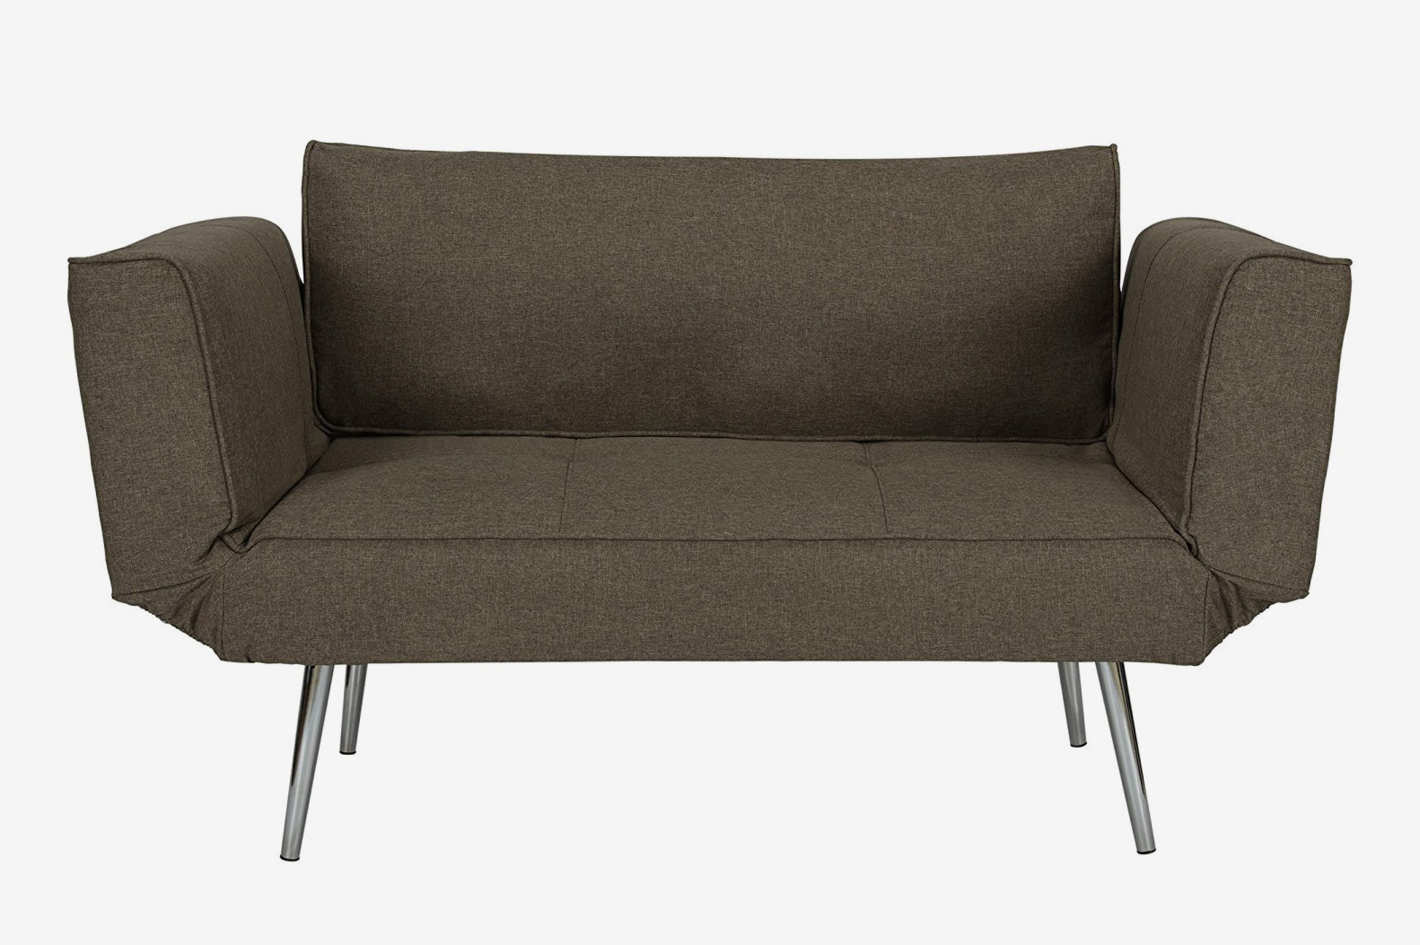 Best Places To Buy A Futon Dhp Euro Sofa Futon Loveseat With Chrome Legs And Adjustable Armrests